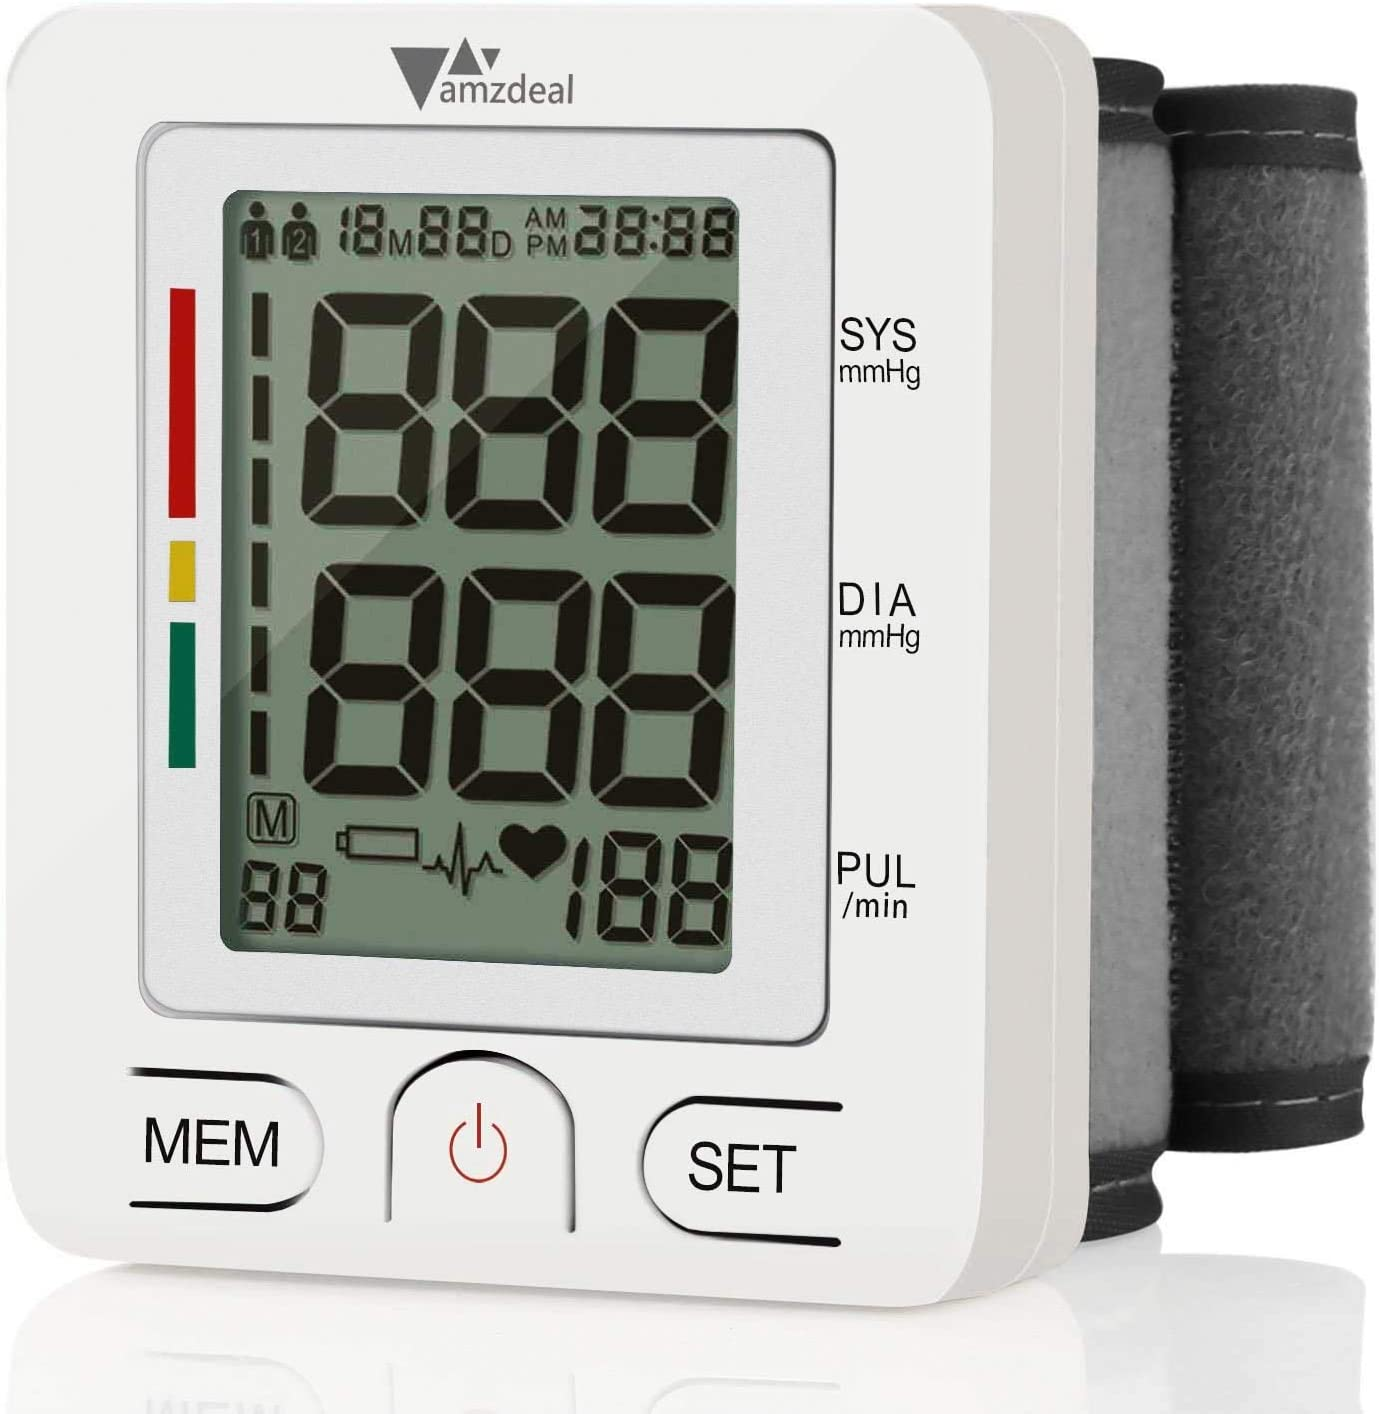 Wrist Blood Pressure Monitor – Amzdeal Blood Pressure Cuff BP Machine with Heartbeat Detector, Reading Storage for 2 Users, Home Use, FDA Approved